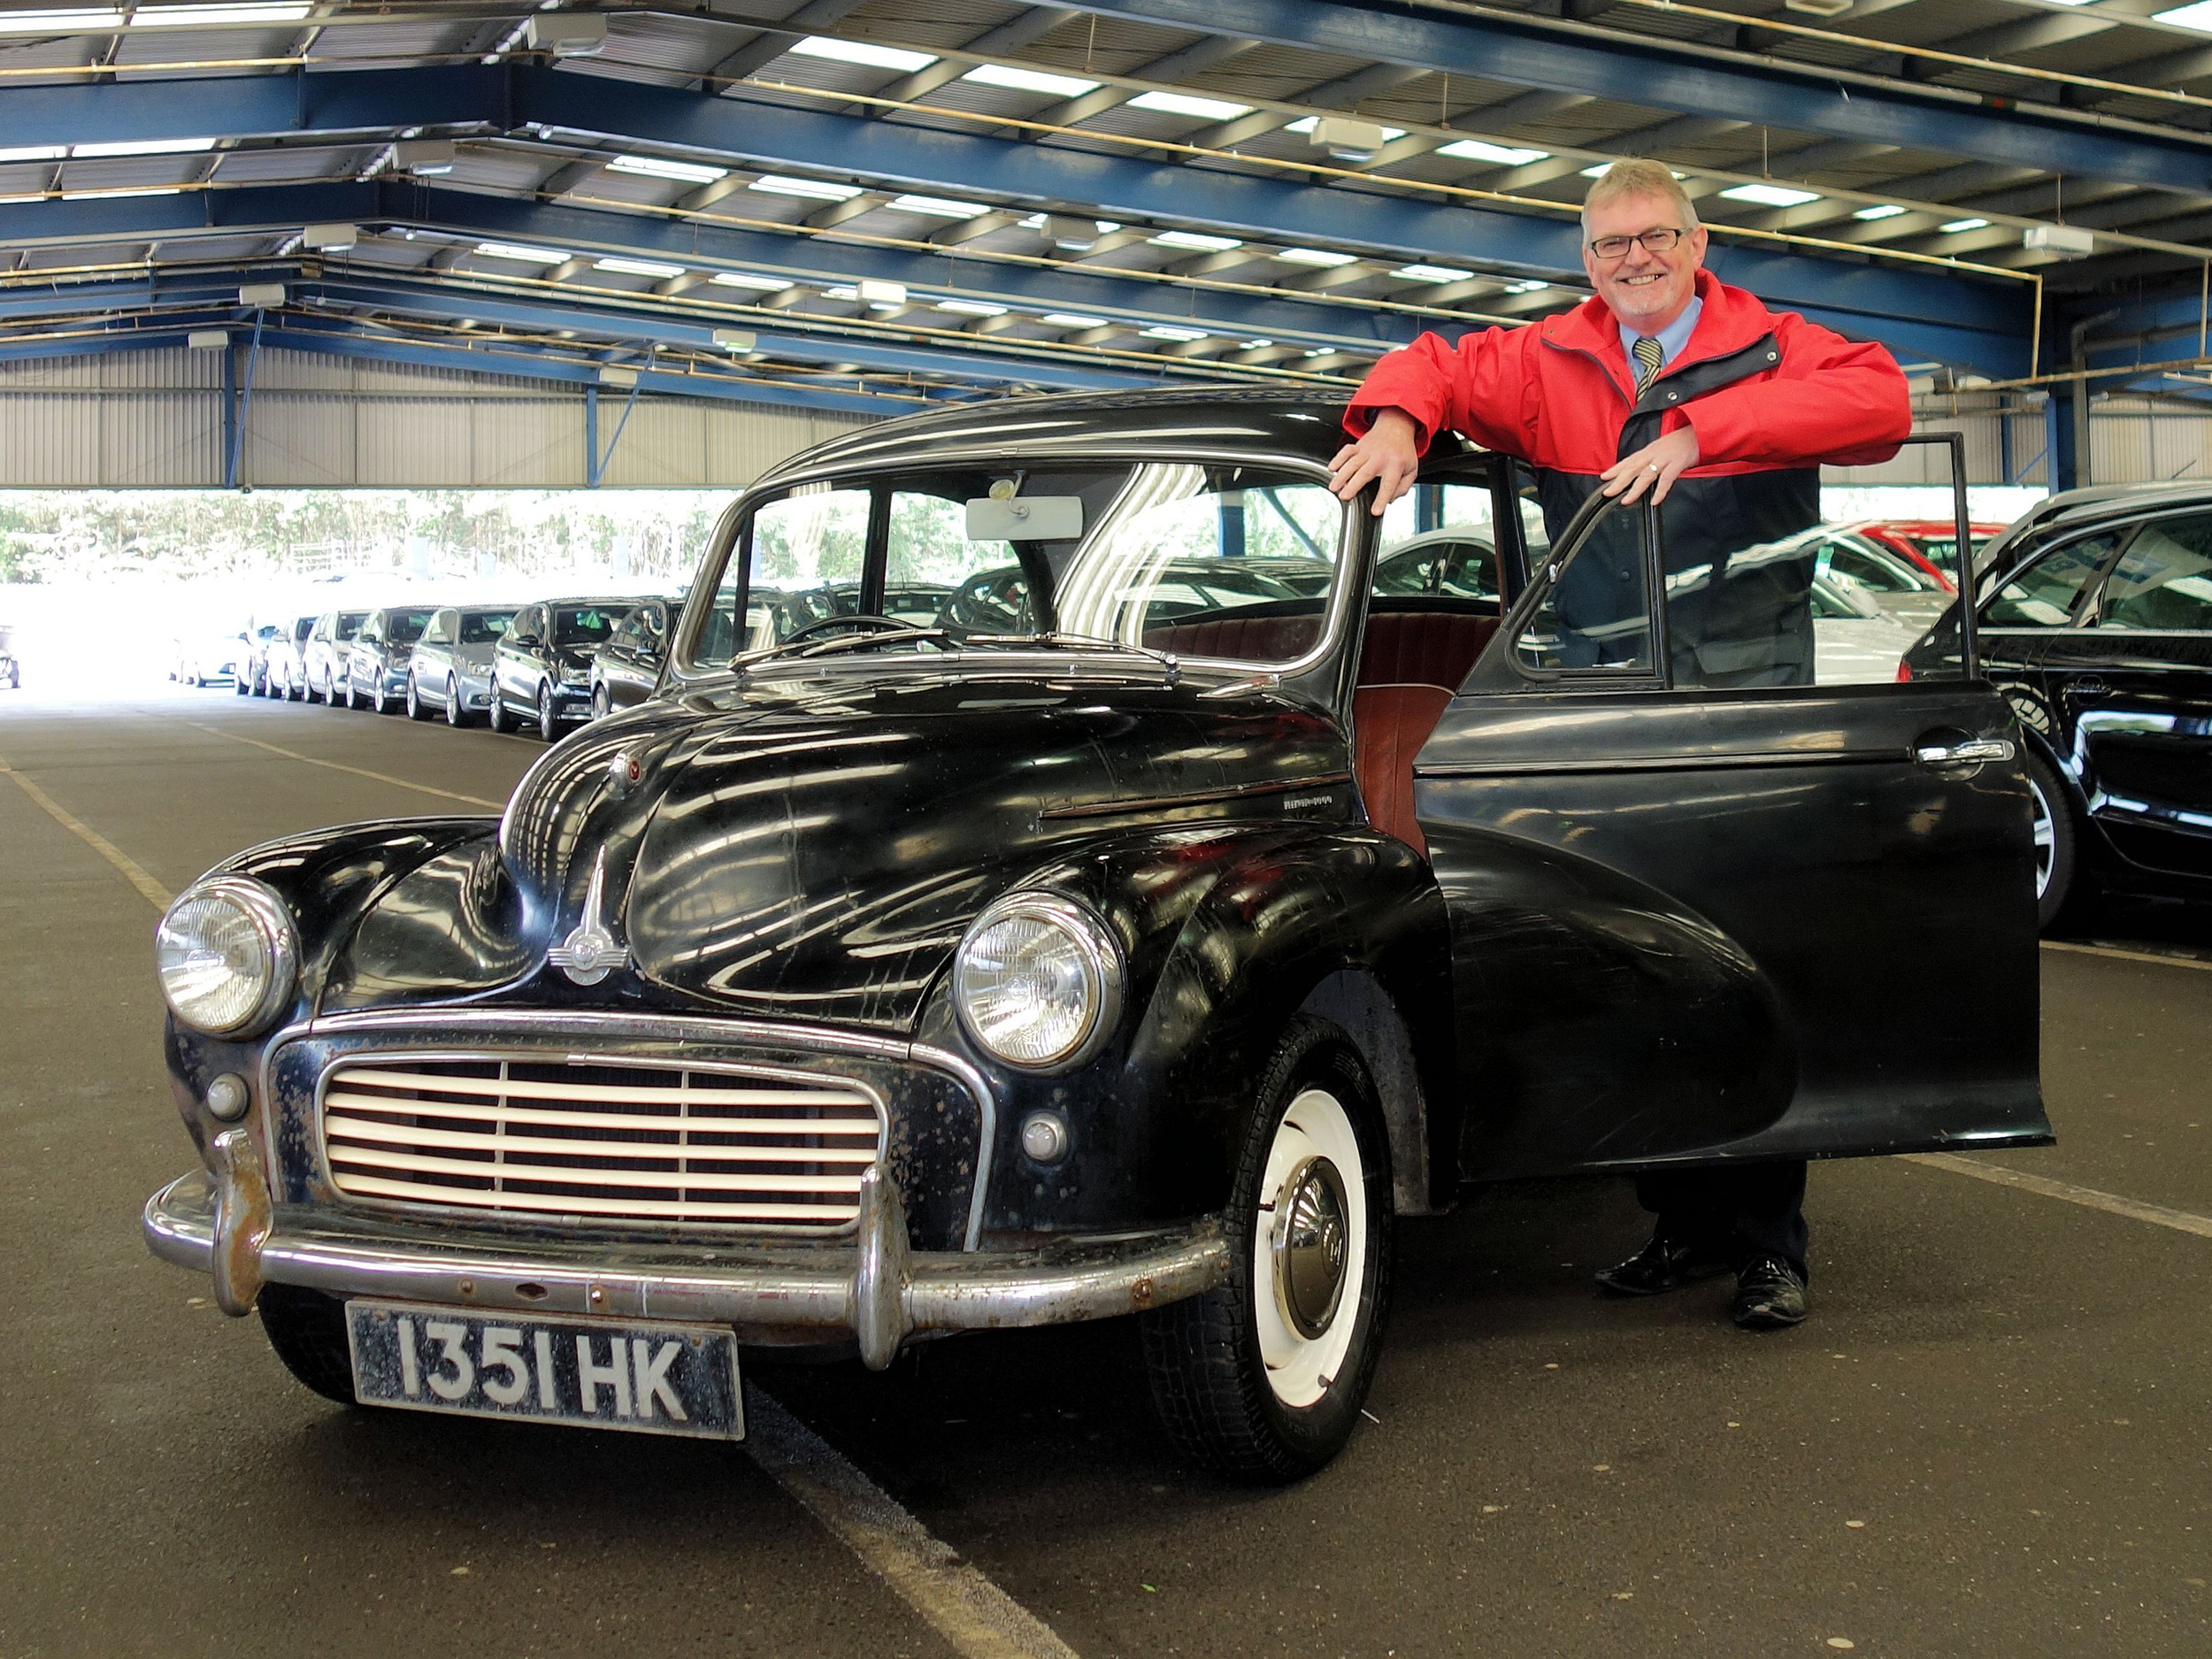 BCA to sell Morris Minor again - after 35 years